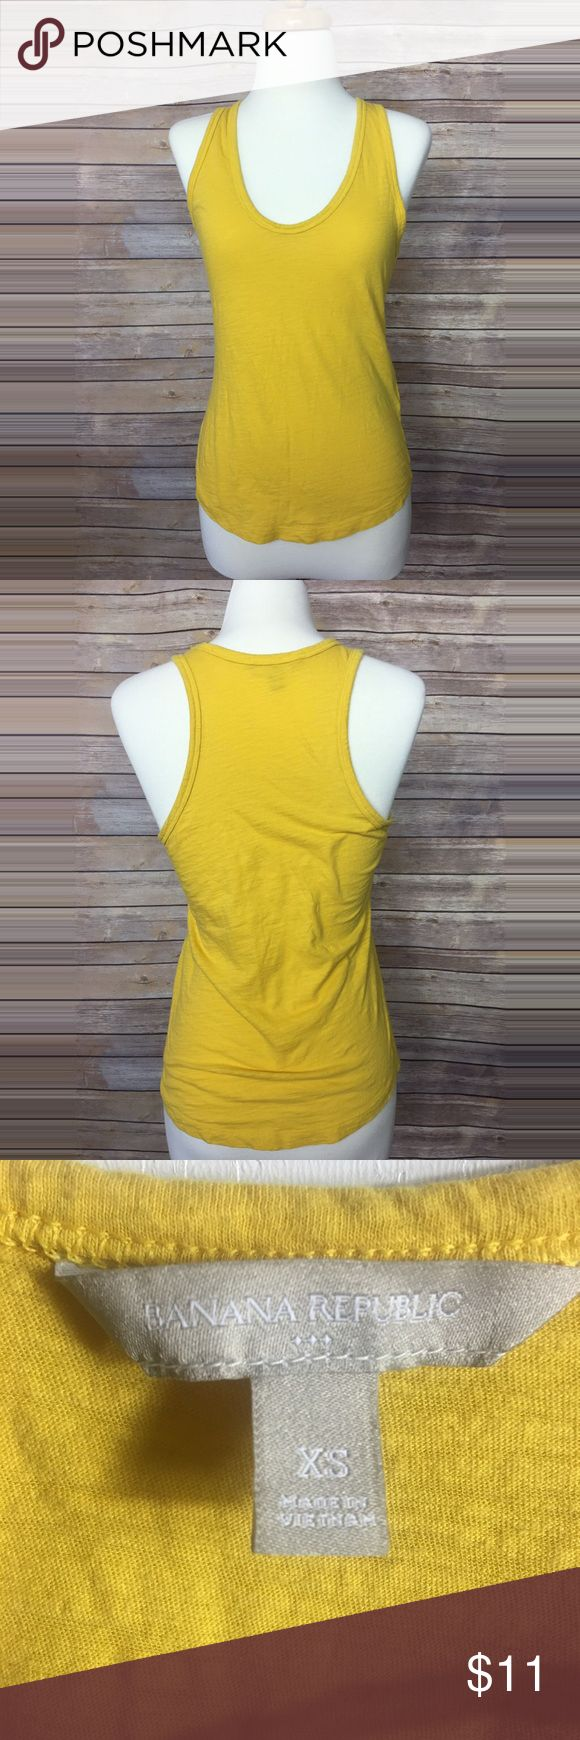 Banana Republic yellow tank top Cute little yellow Banana Republic tank top. Super stretchy and comfy. Gently used. No rips tears or stains. Measurements are Bust: 17in  Lenght: 23in Banana Republic Tops Tank Tops